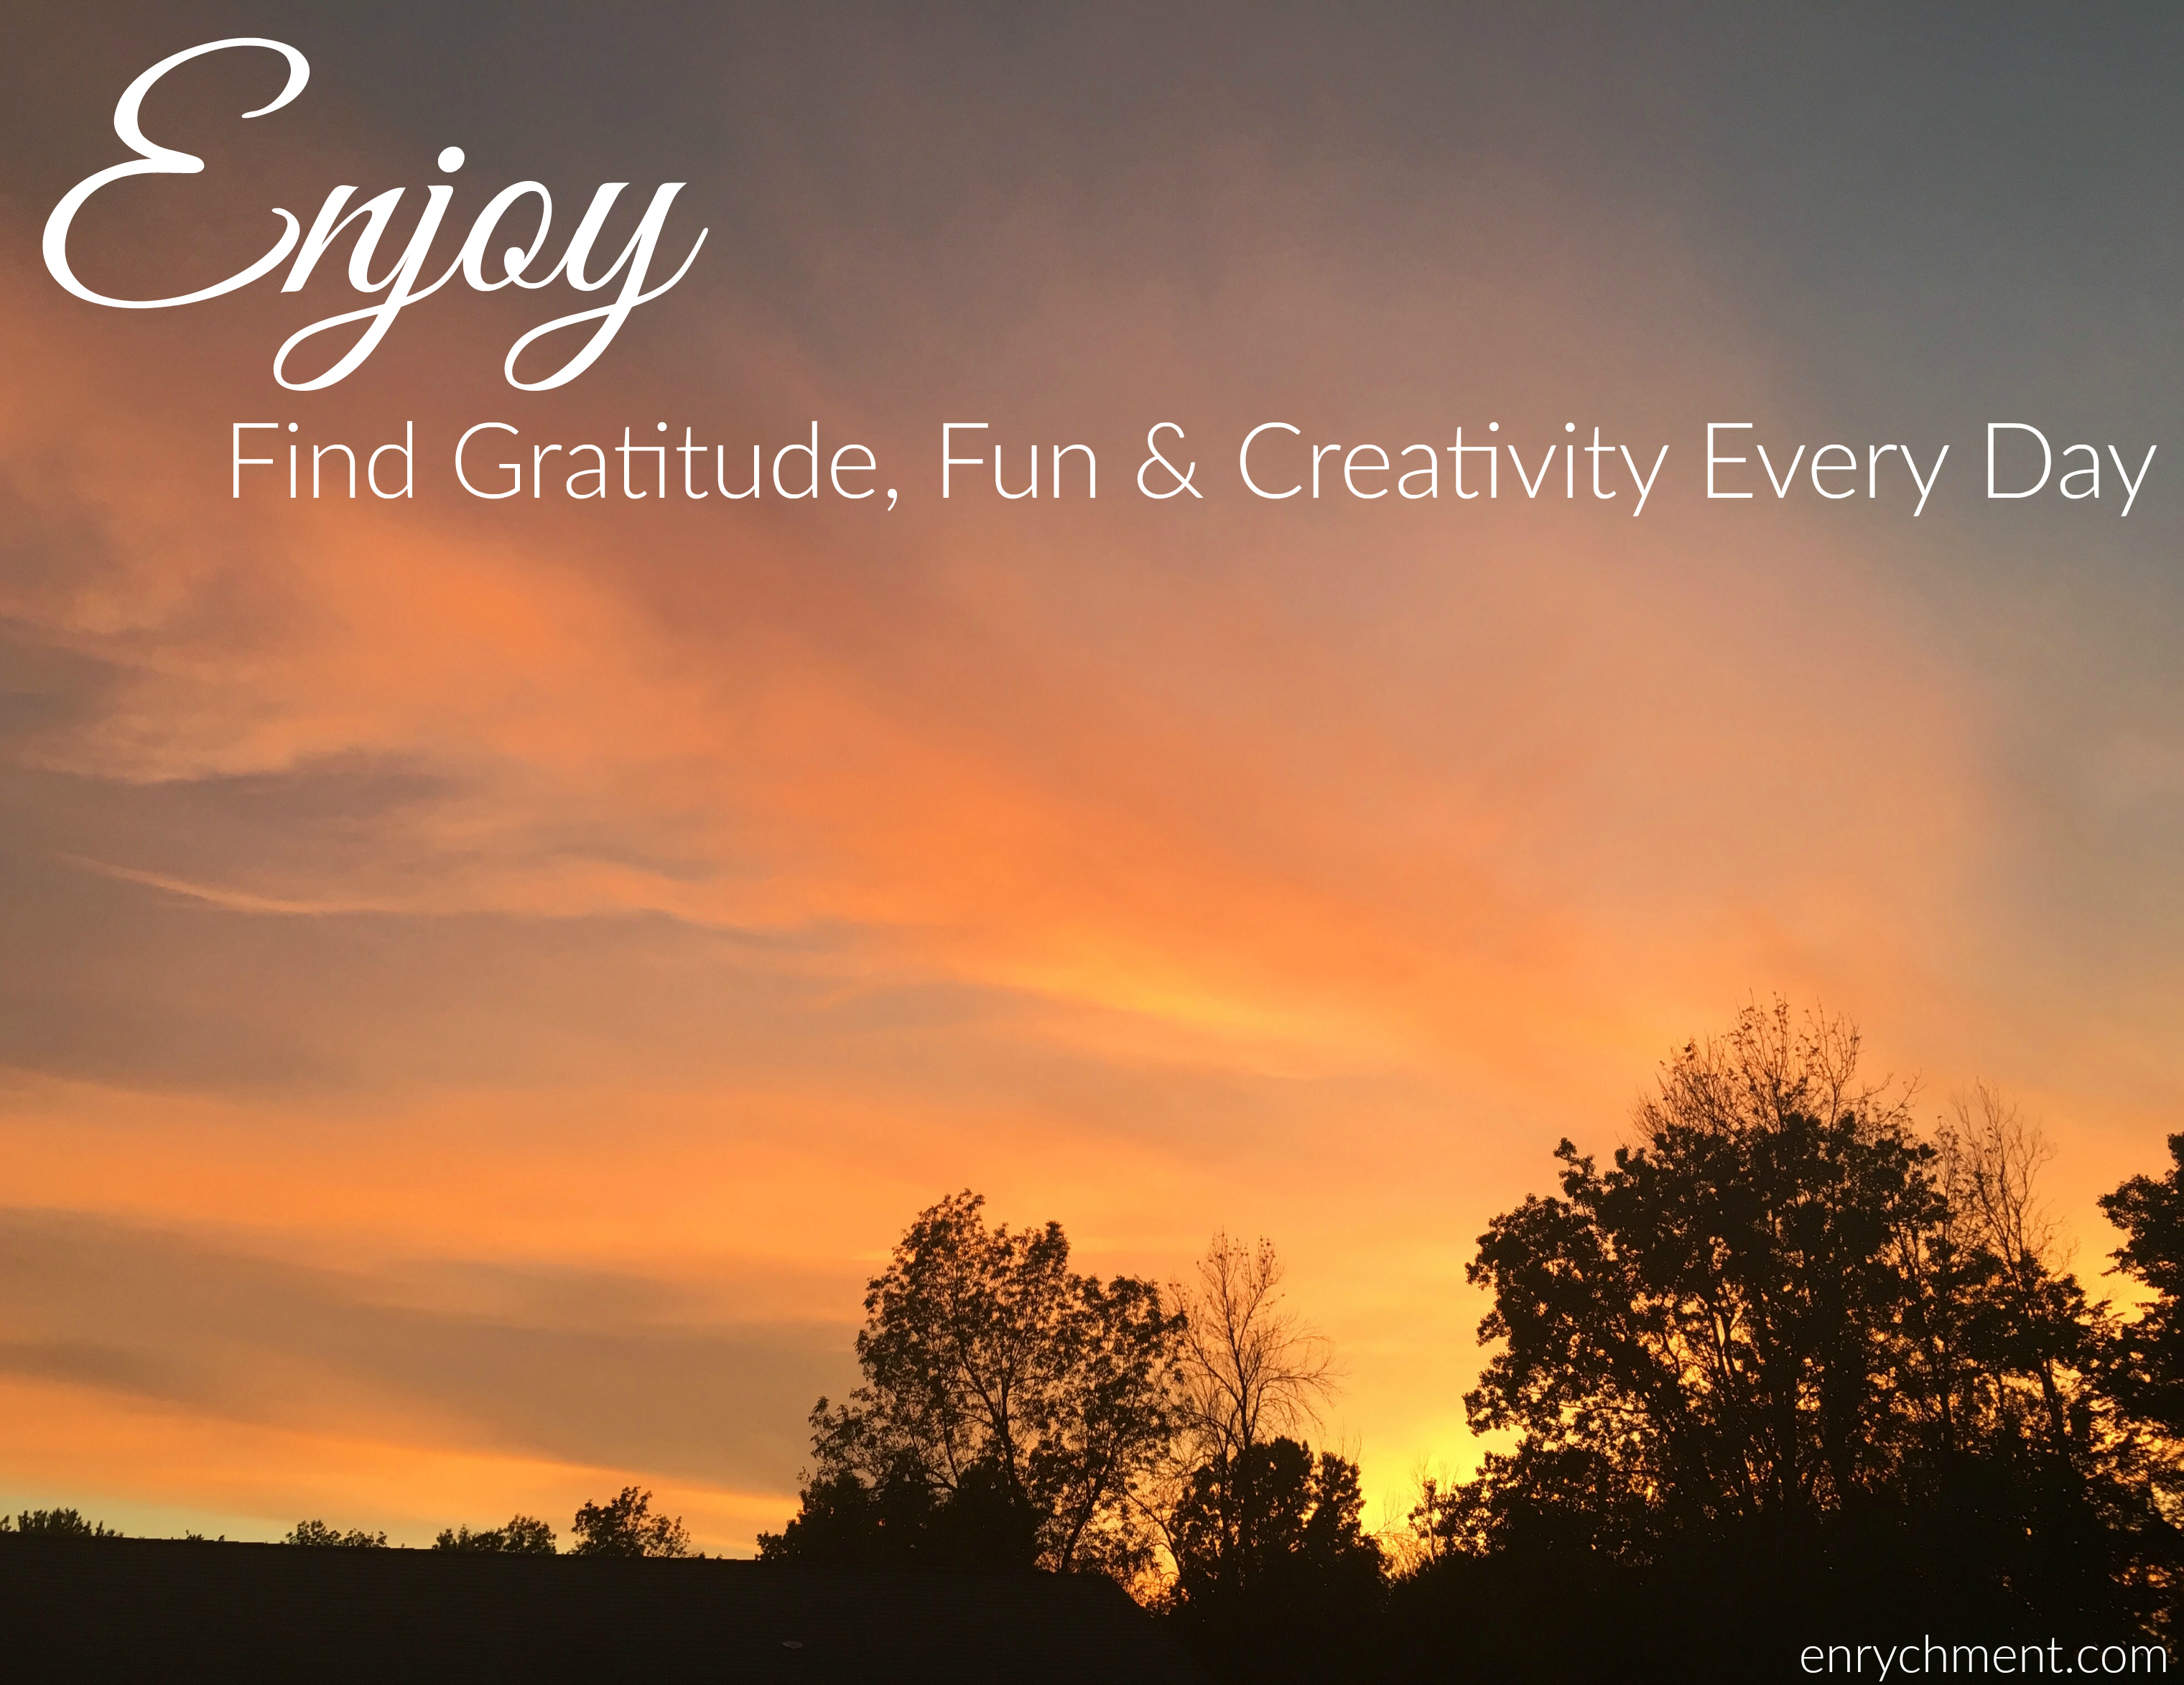 Find gratitude, fun and creativity to help enjoy every single day